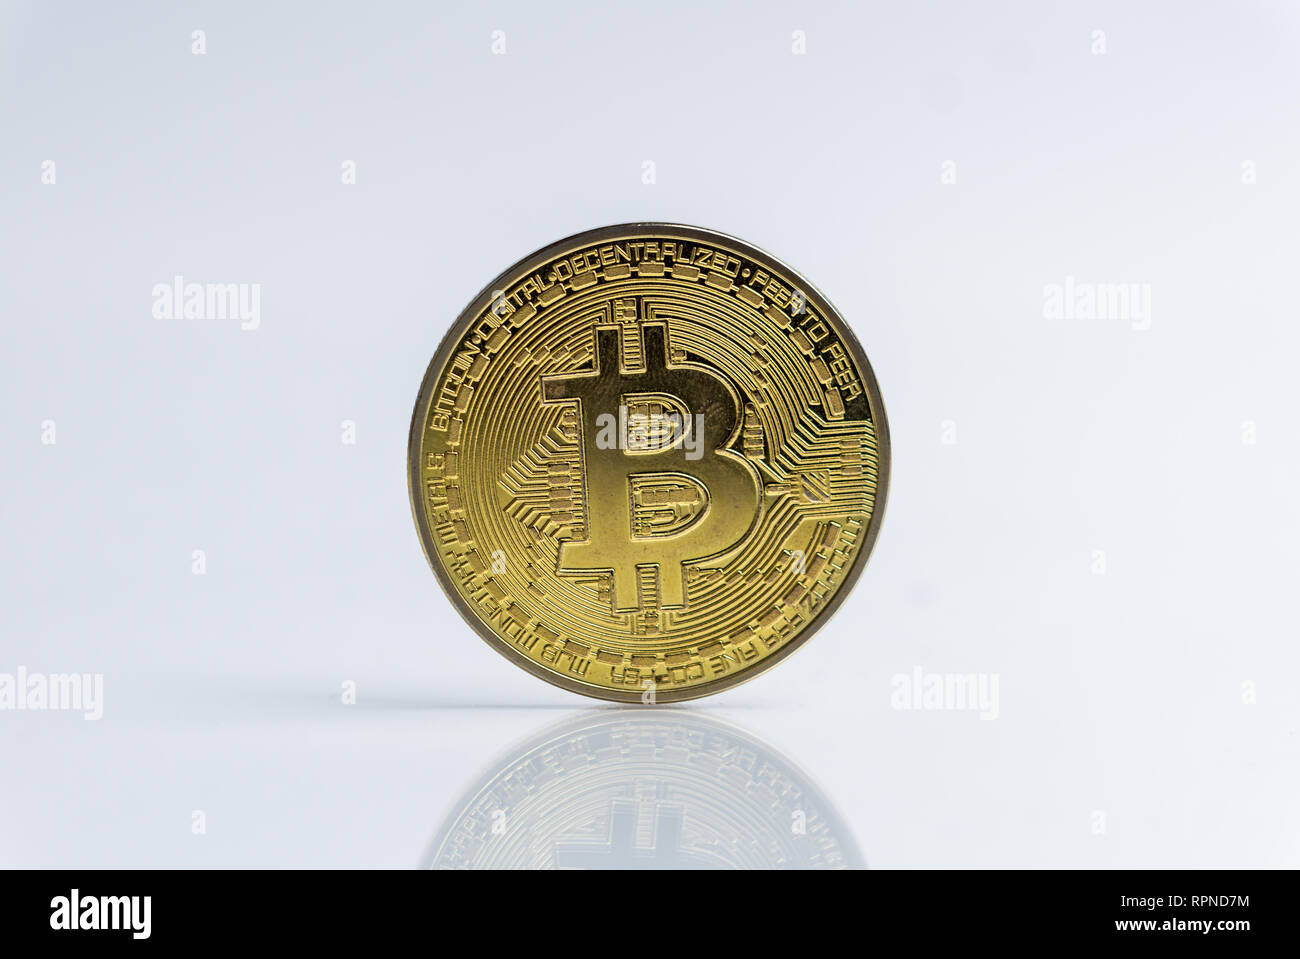 Bitcoin. Crypto currency Gold Bitcoin, BTC, Bit Coin. Macro shot of Bitcoin coins isolated on white background, cut out Blockchain technology, - Stock Image